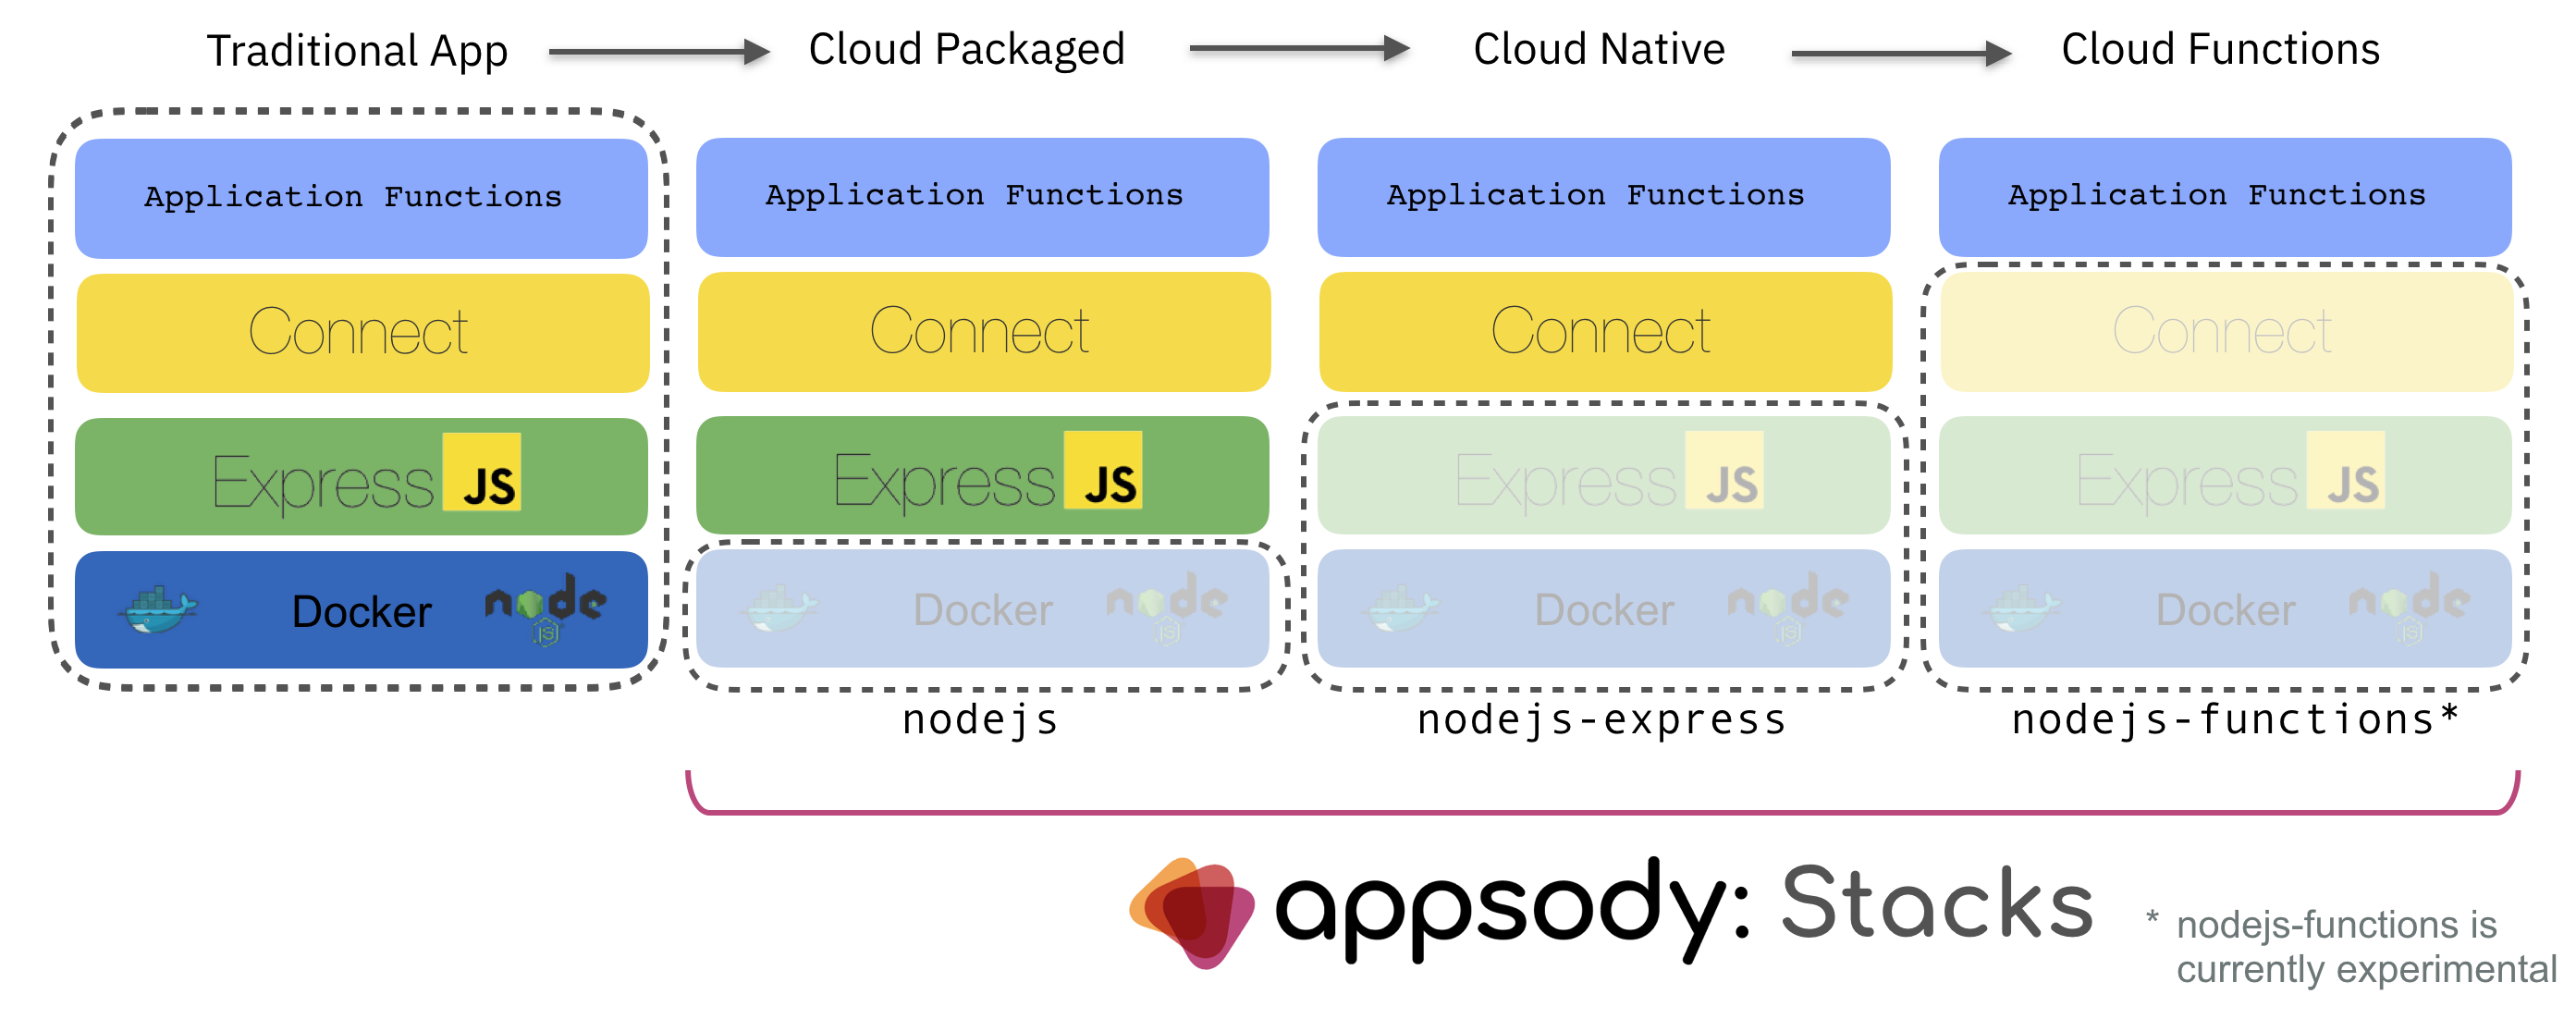 Diagram showing the range of stacks for Node.js, spanning those for Cloud Packaging, Cloud Native and Cloud Functions